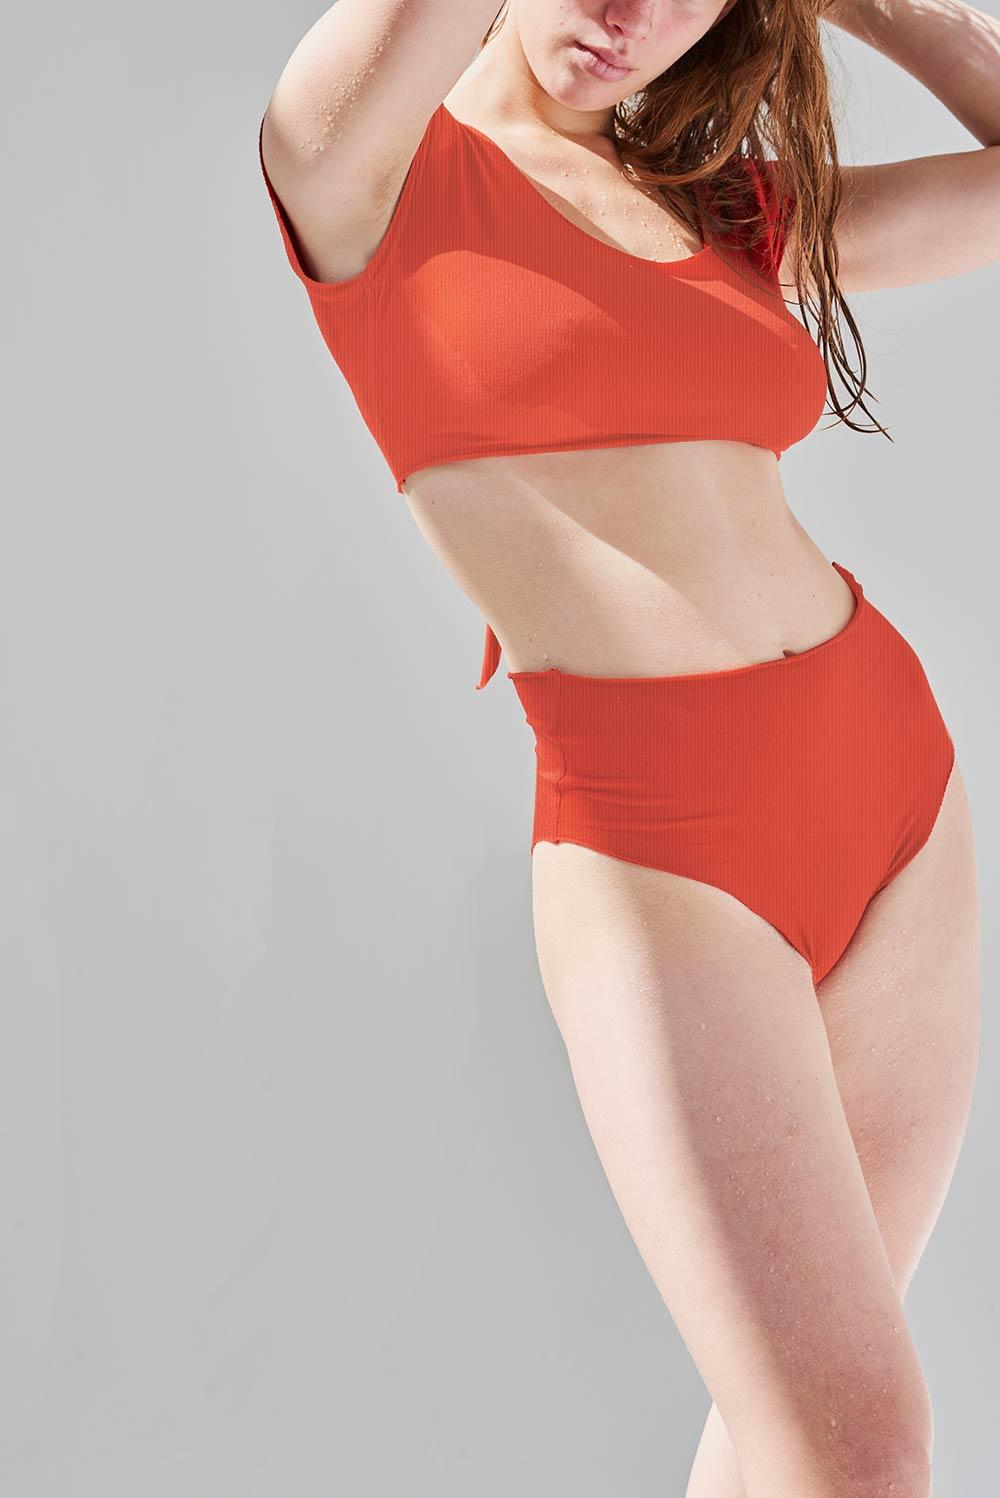 Marina Red Ack Swimwear